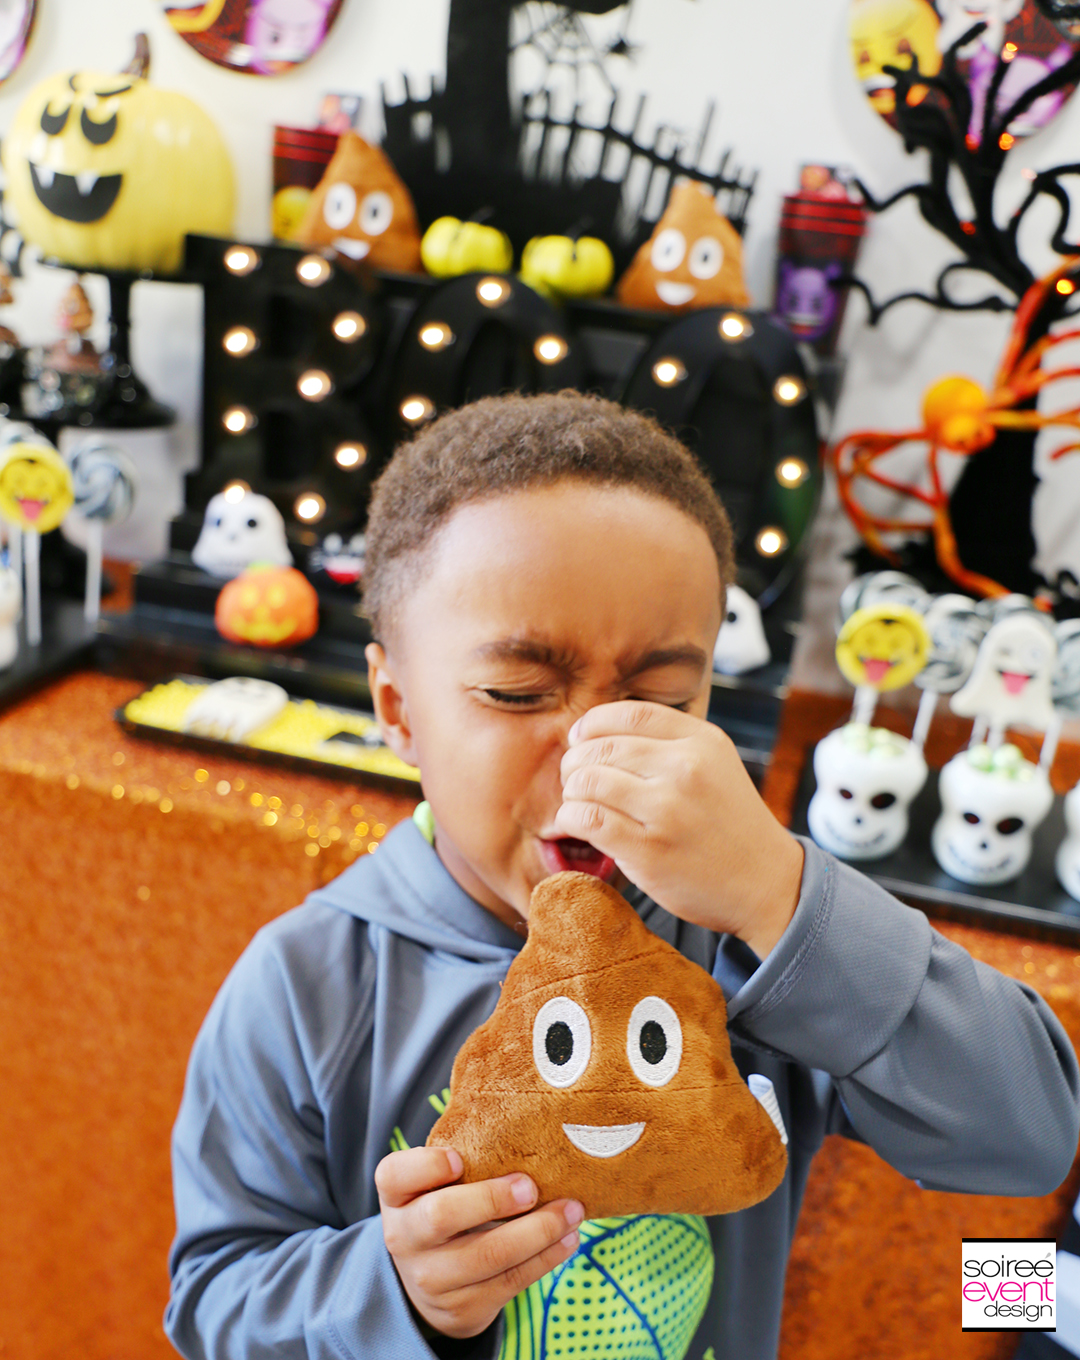 Emoji Halloween Party Ideas - Plush Poop Emoji